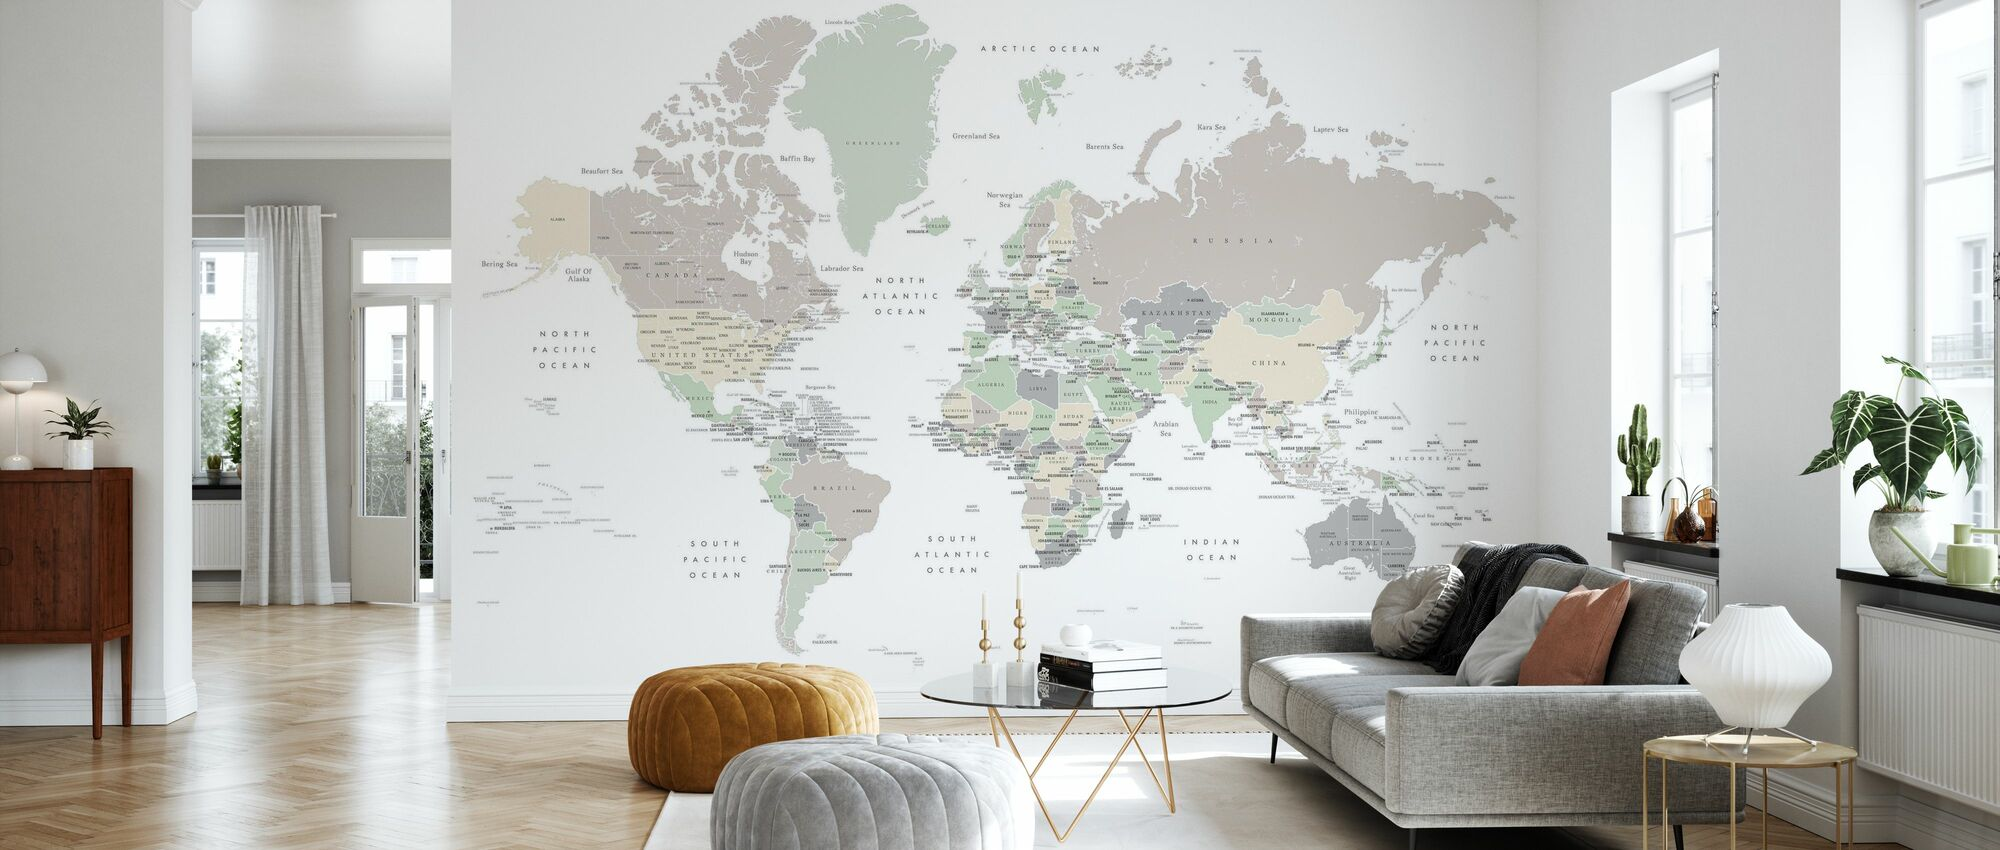 World Map with Capitals - Wallpaper - Living Room